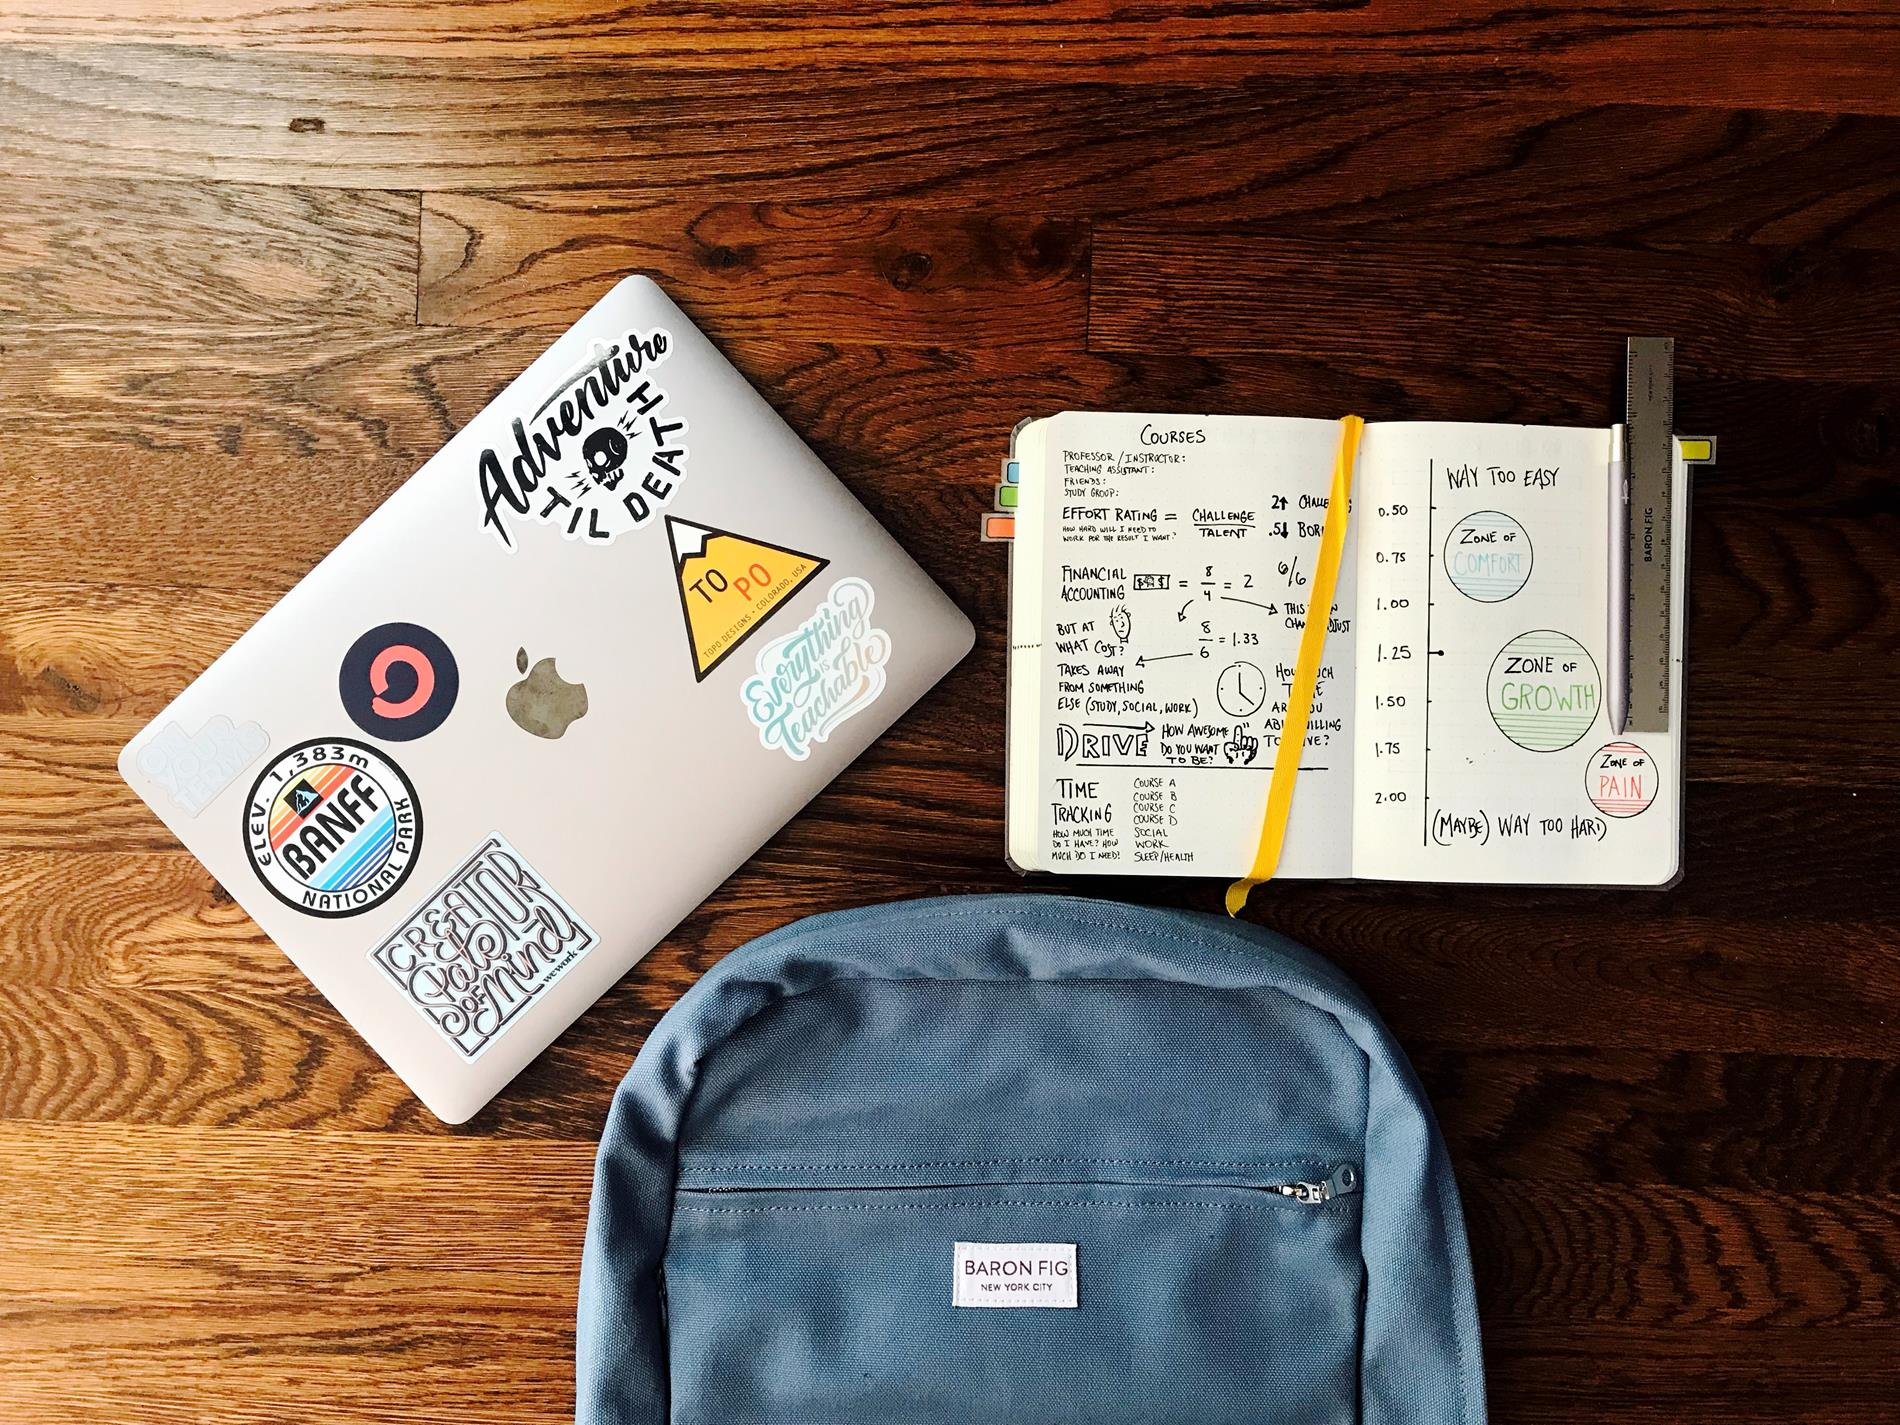 overhead image of mac laptop with stickers, open notebook with school notes, and blue backpack